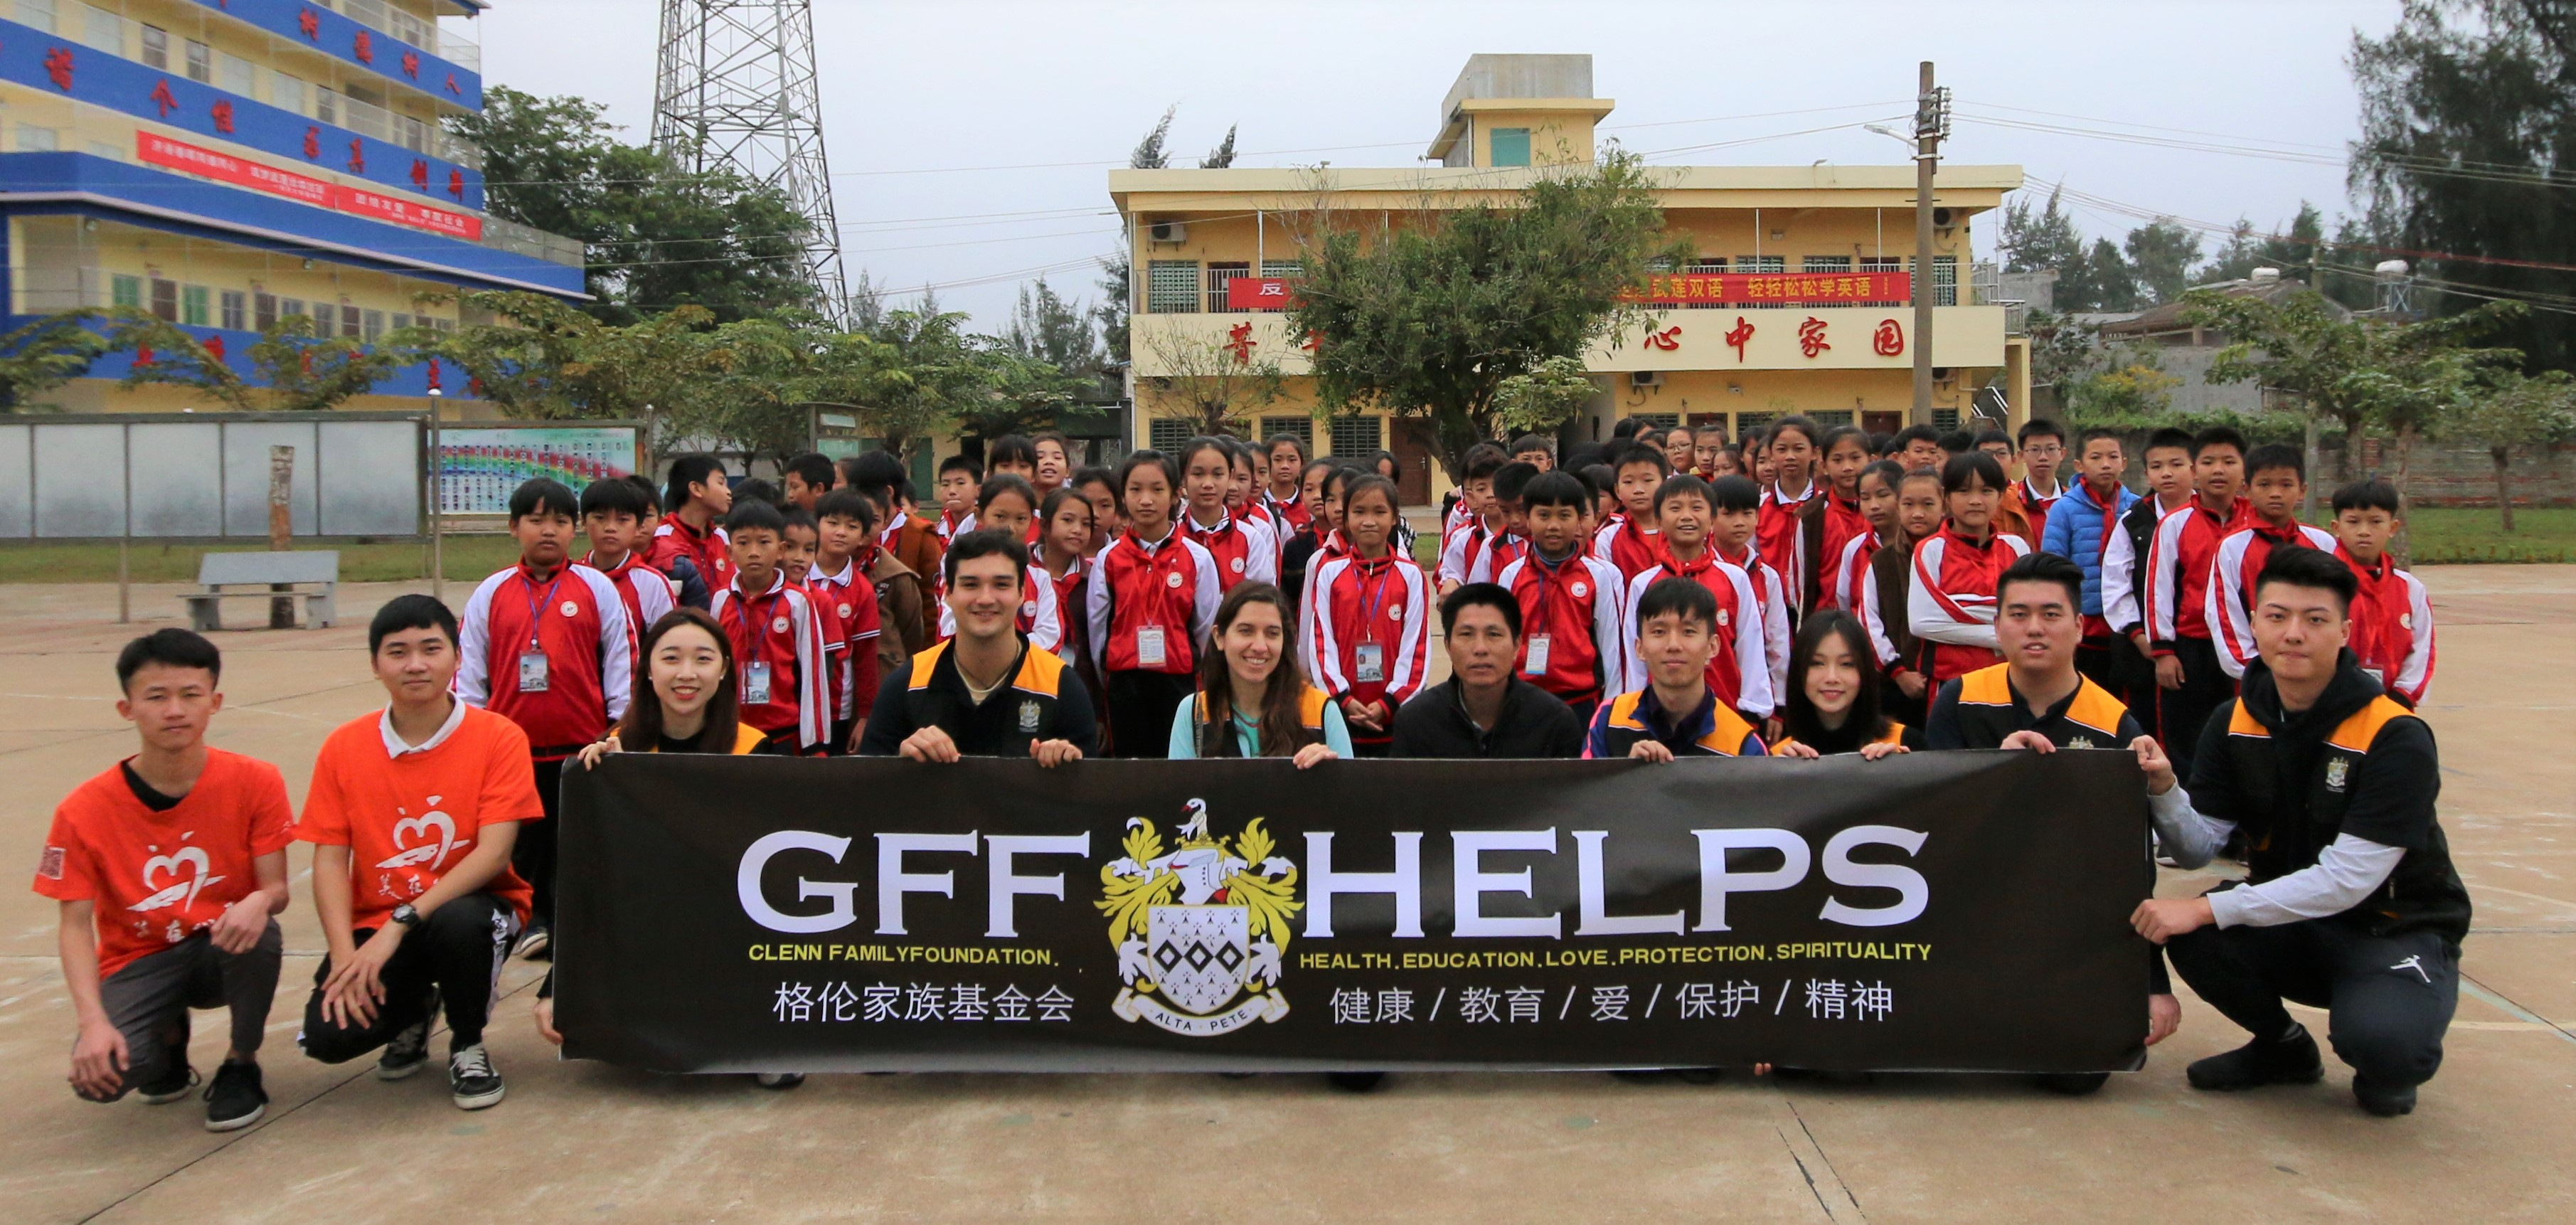 Violet Ge – Blazing a GFF HELPS trail in Hainan